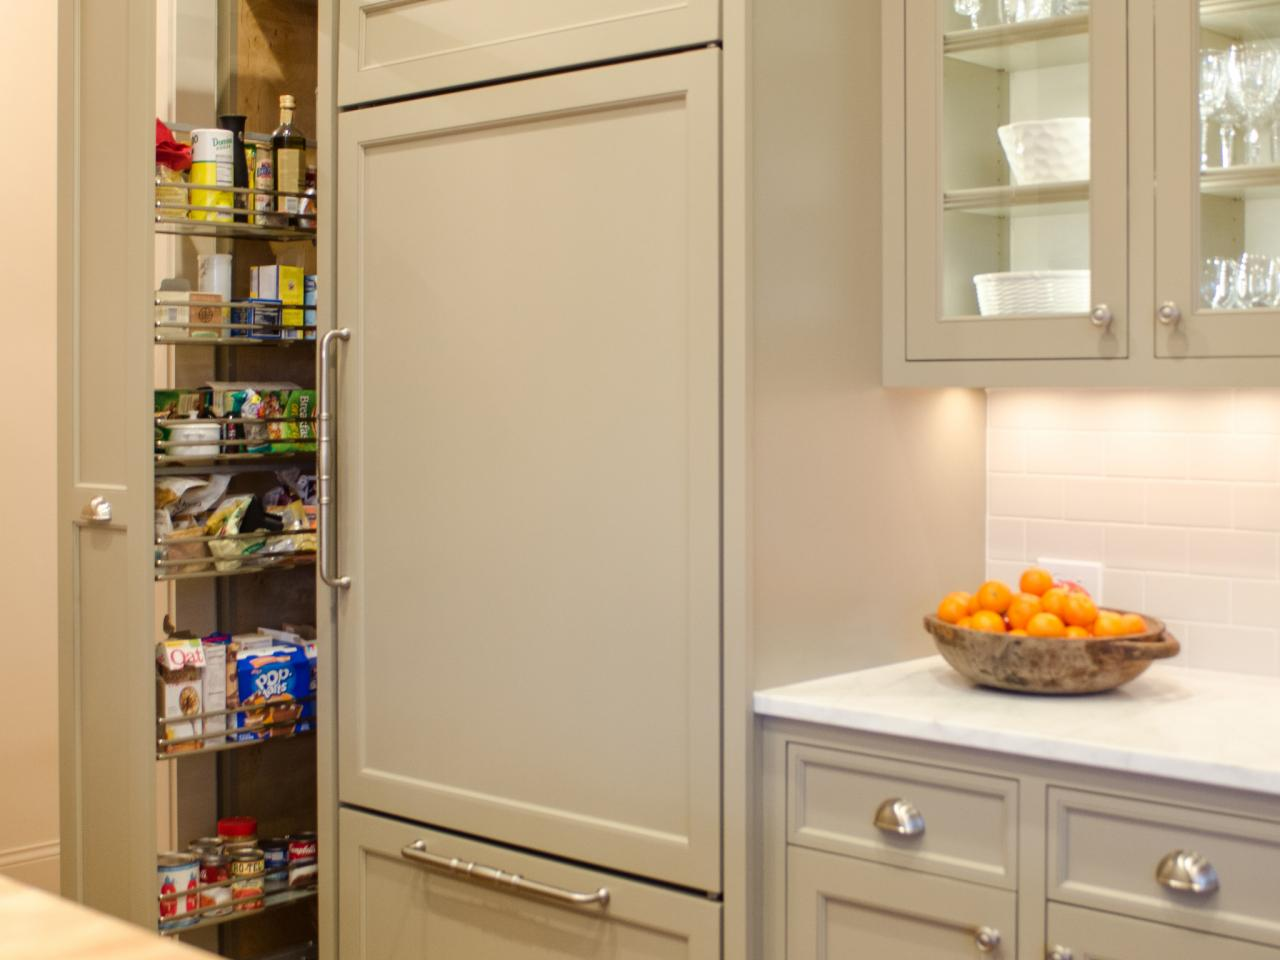 ravishing kitchen pantry design with plans free design gallery | Pantry Cabinet Plans: Pictures, Options, Tips & Ideas | HGTV